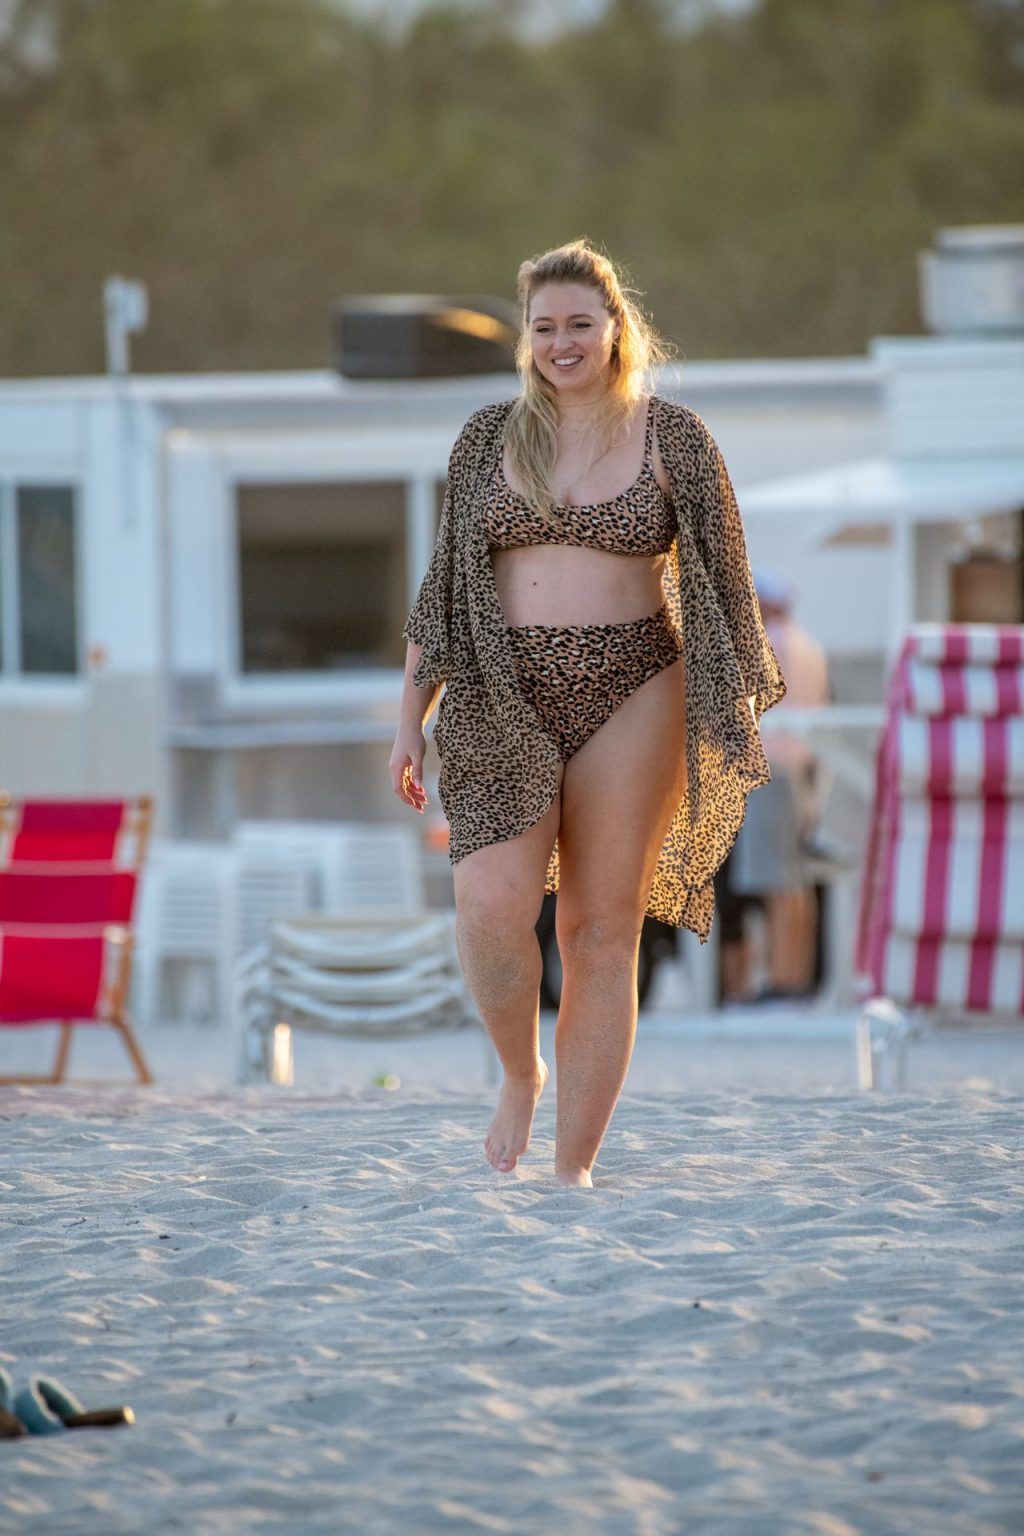 Iskra Lawrence Sexy The Fappening Blog 8 1024x1536 - Heavily Pregnant Model Iskra Lawrence Takes A Sunset Dip In Miami Beach (44 Photos)